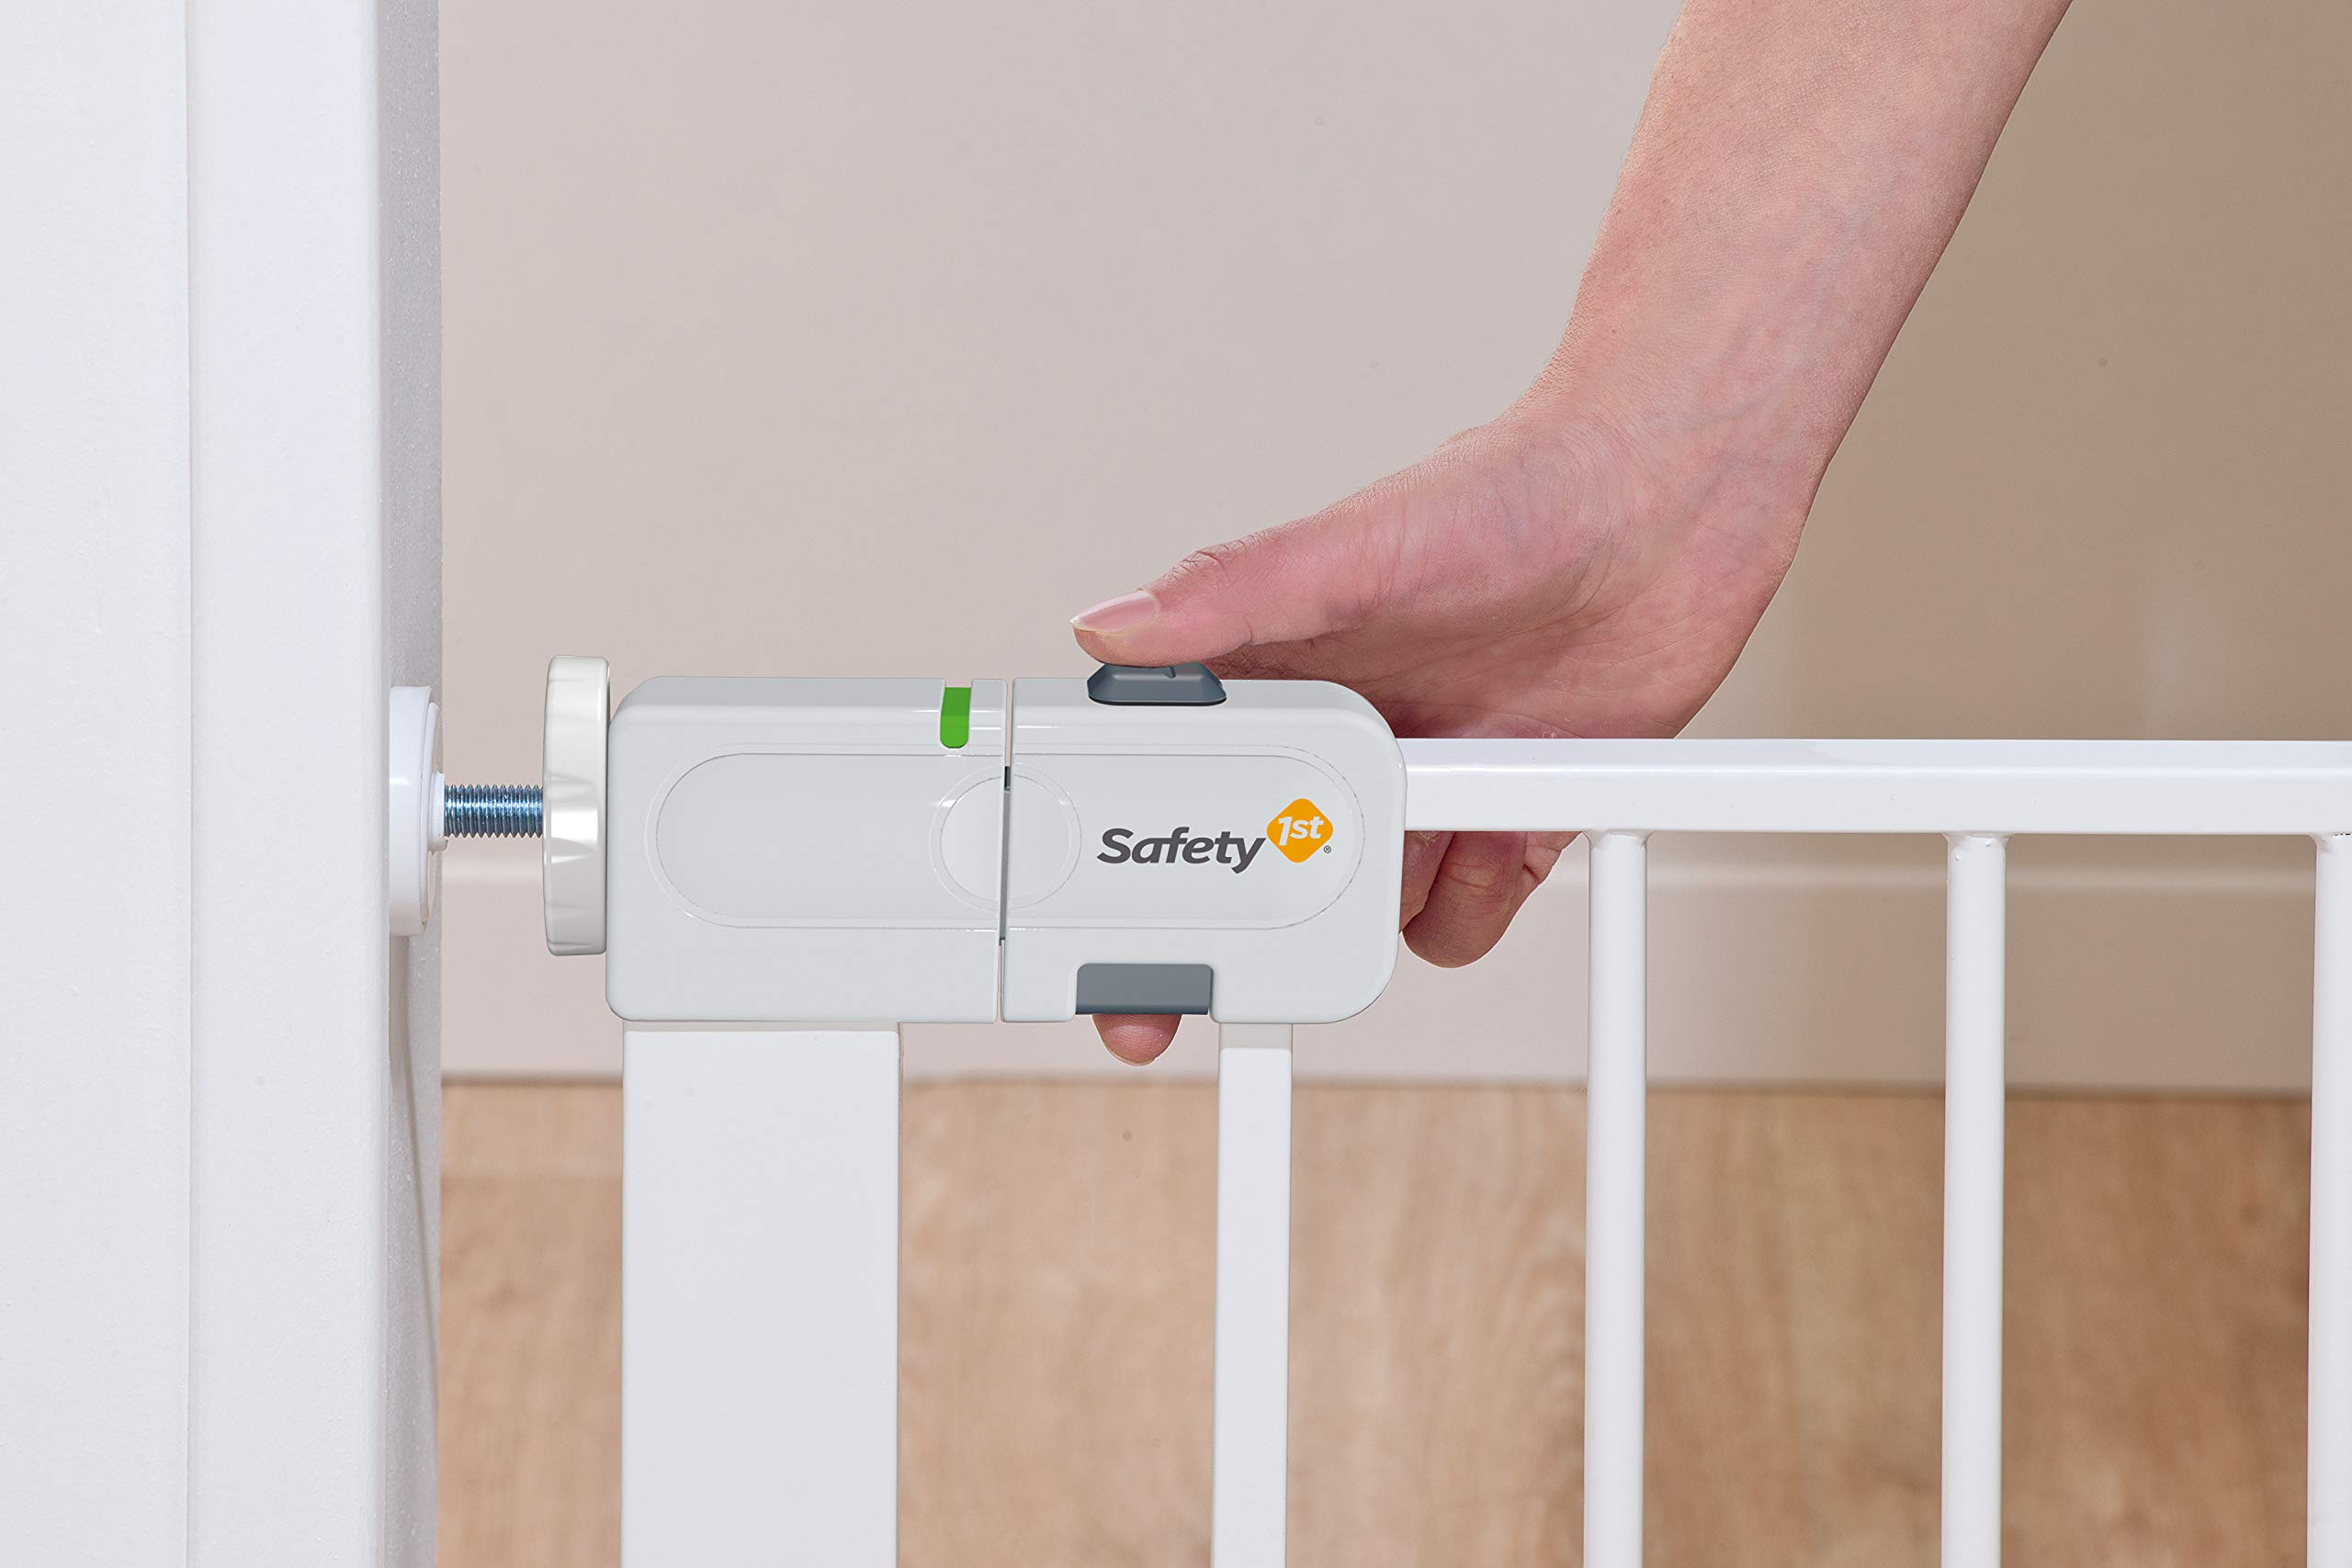 """Safety 1st Secure Tech Auto Close Metal Gate, White Safety 1st One handed opening """"true"""" auto-closing whatever the opening amplitude U-shaped frame with 4 pressure points provides solid fit and doesn't require drilling Secure tech indicator shows the gate is safely locked into place 8"""